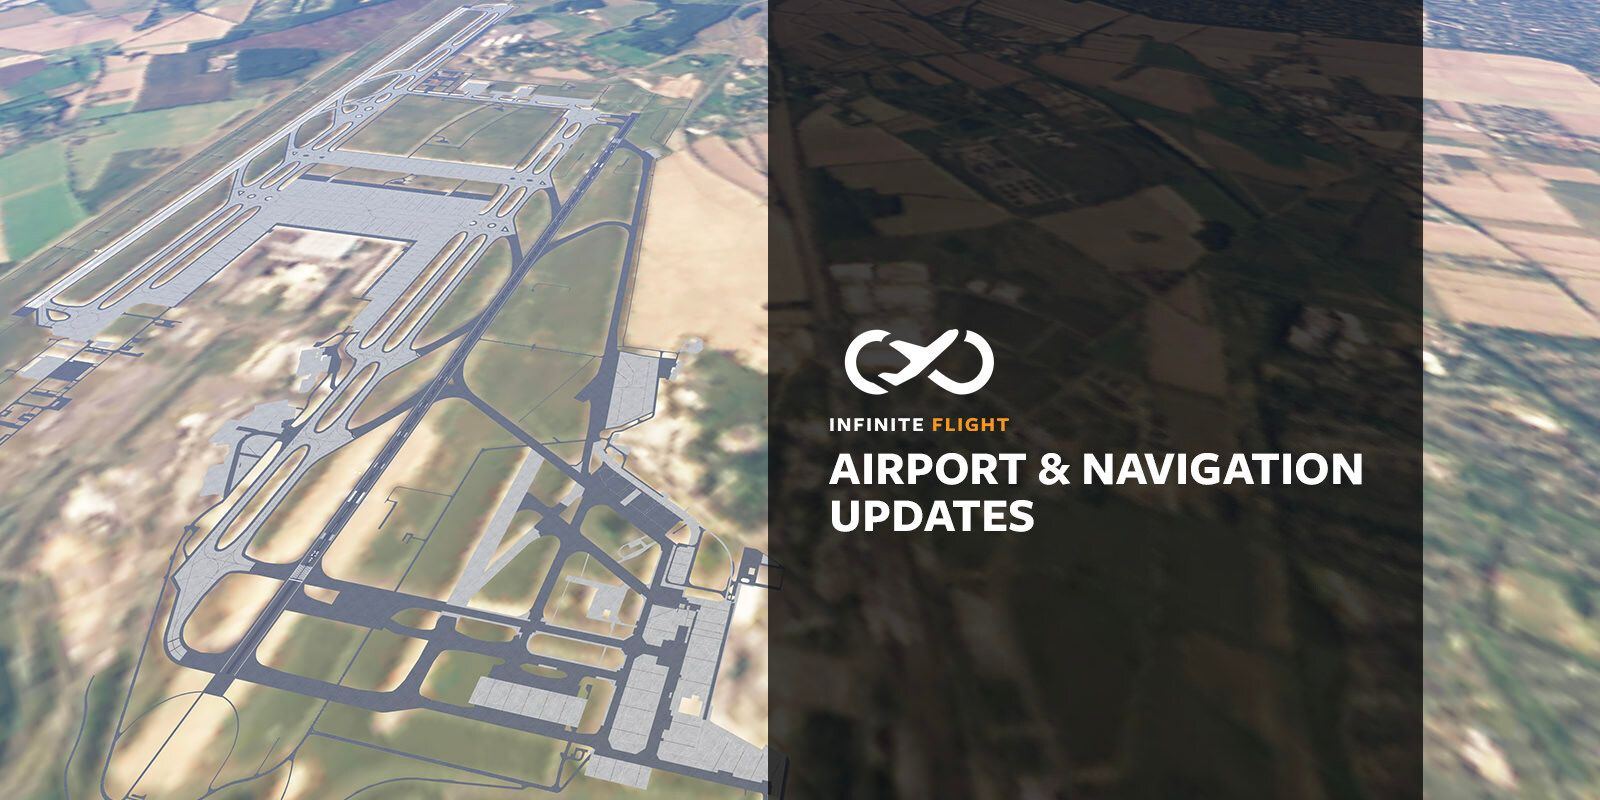 Airport and Navigation Updates - November 2020